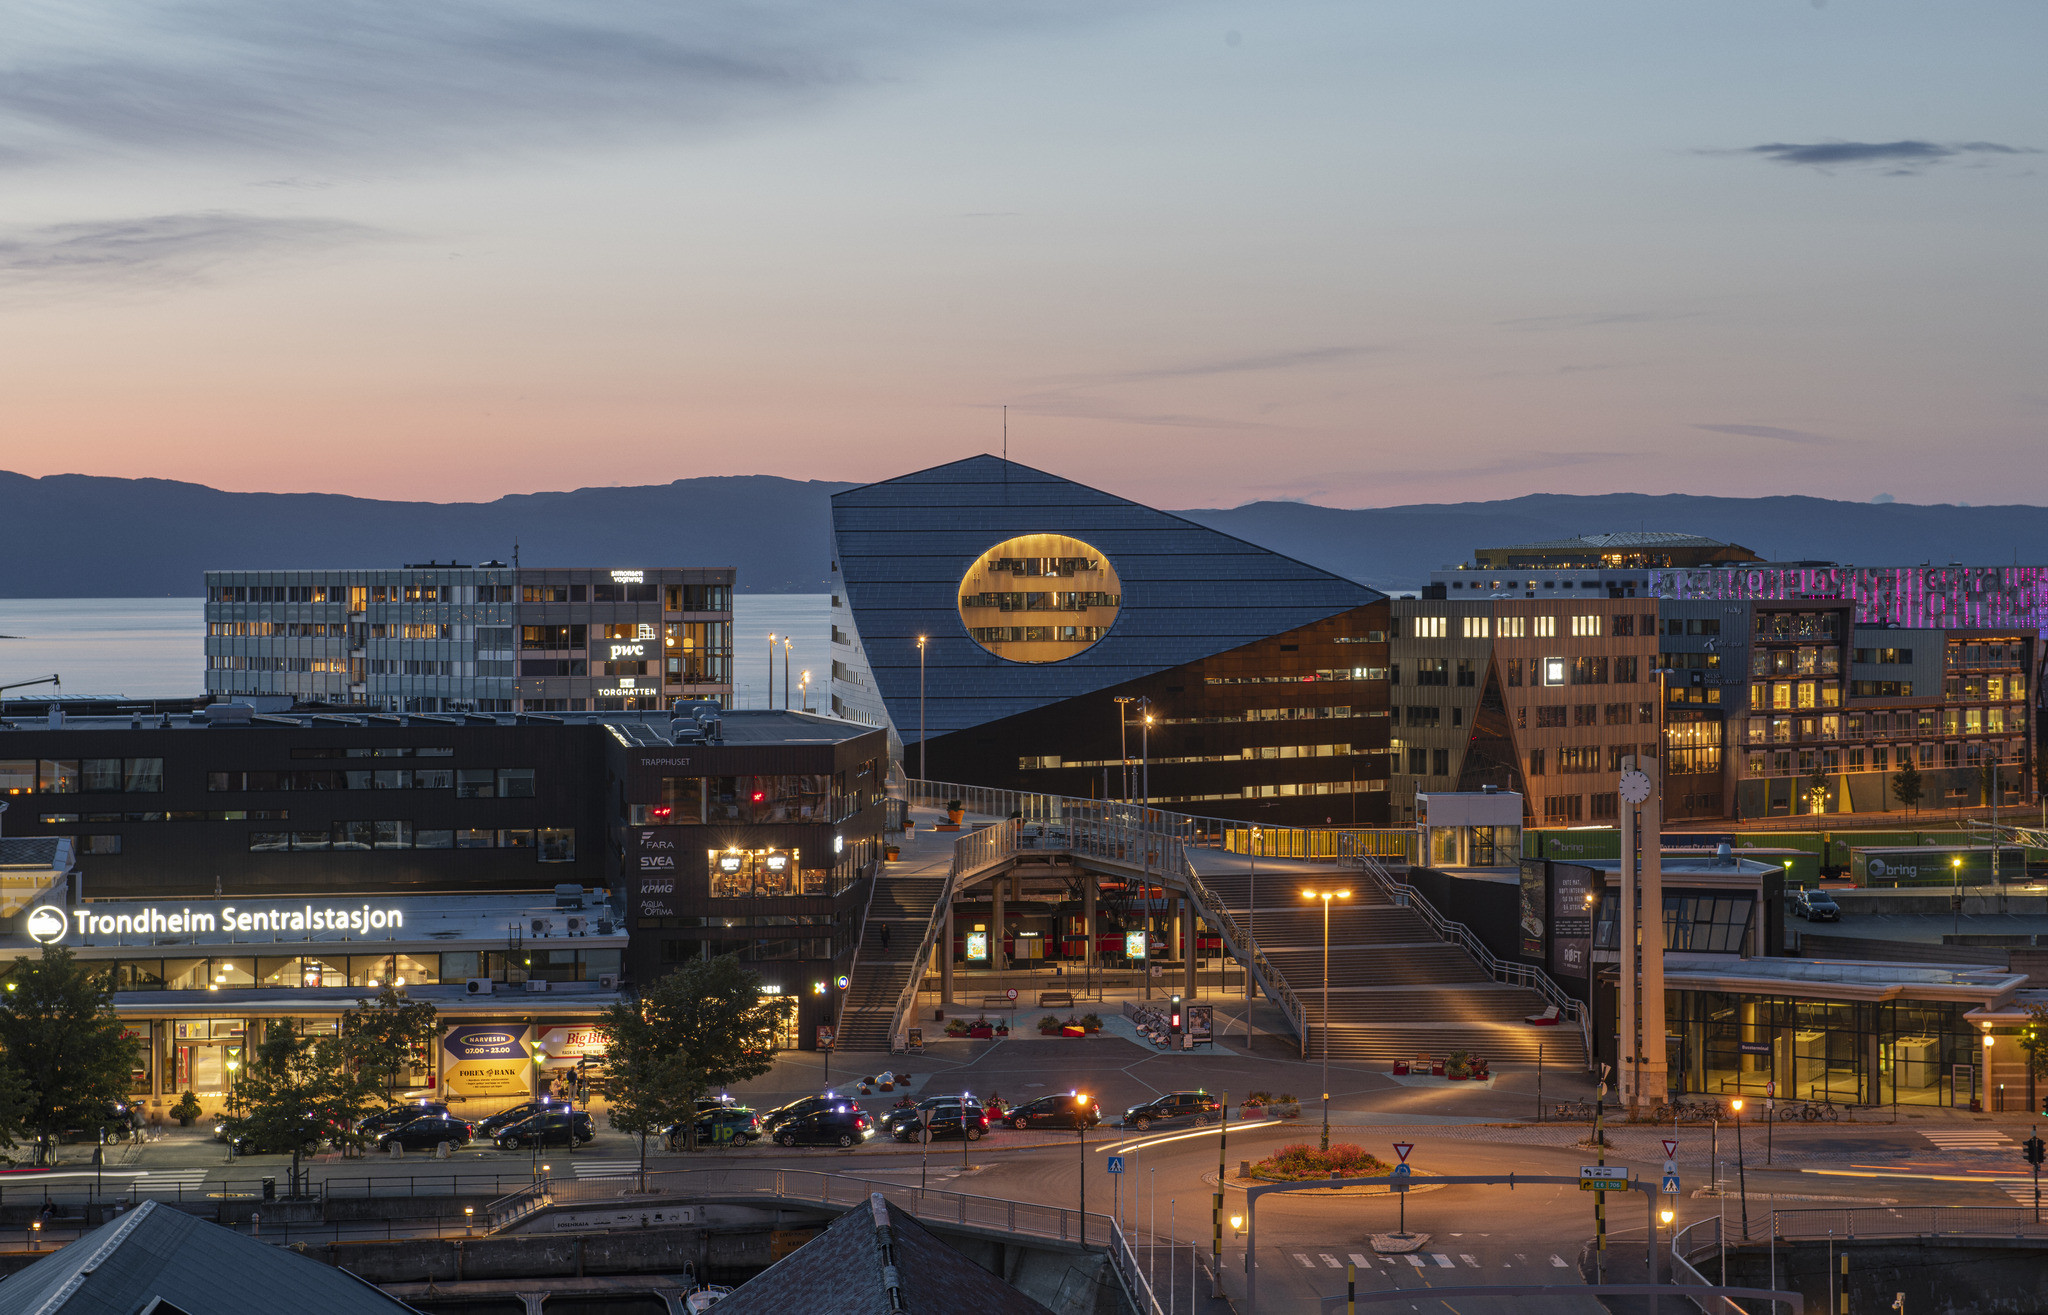 Powerhouse Brattørkaia is the Word's Northernmost 'Energy- Positive' Building